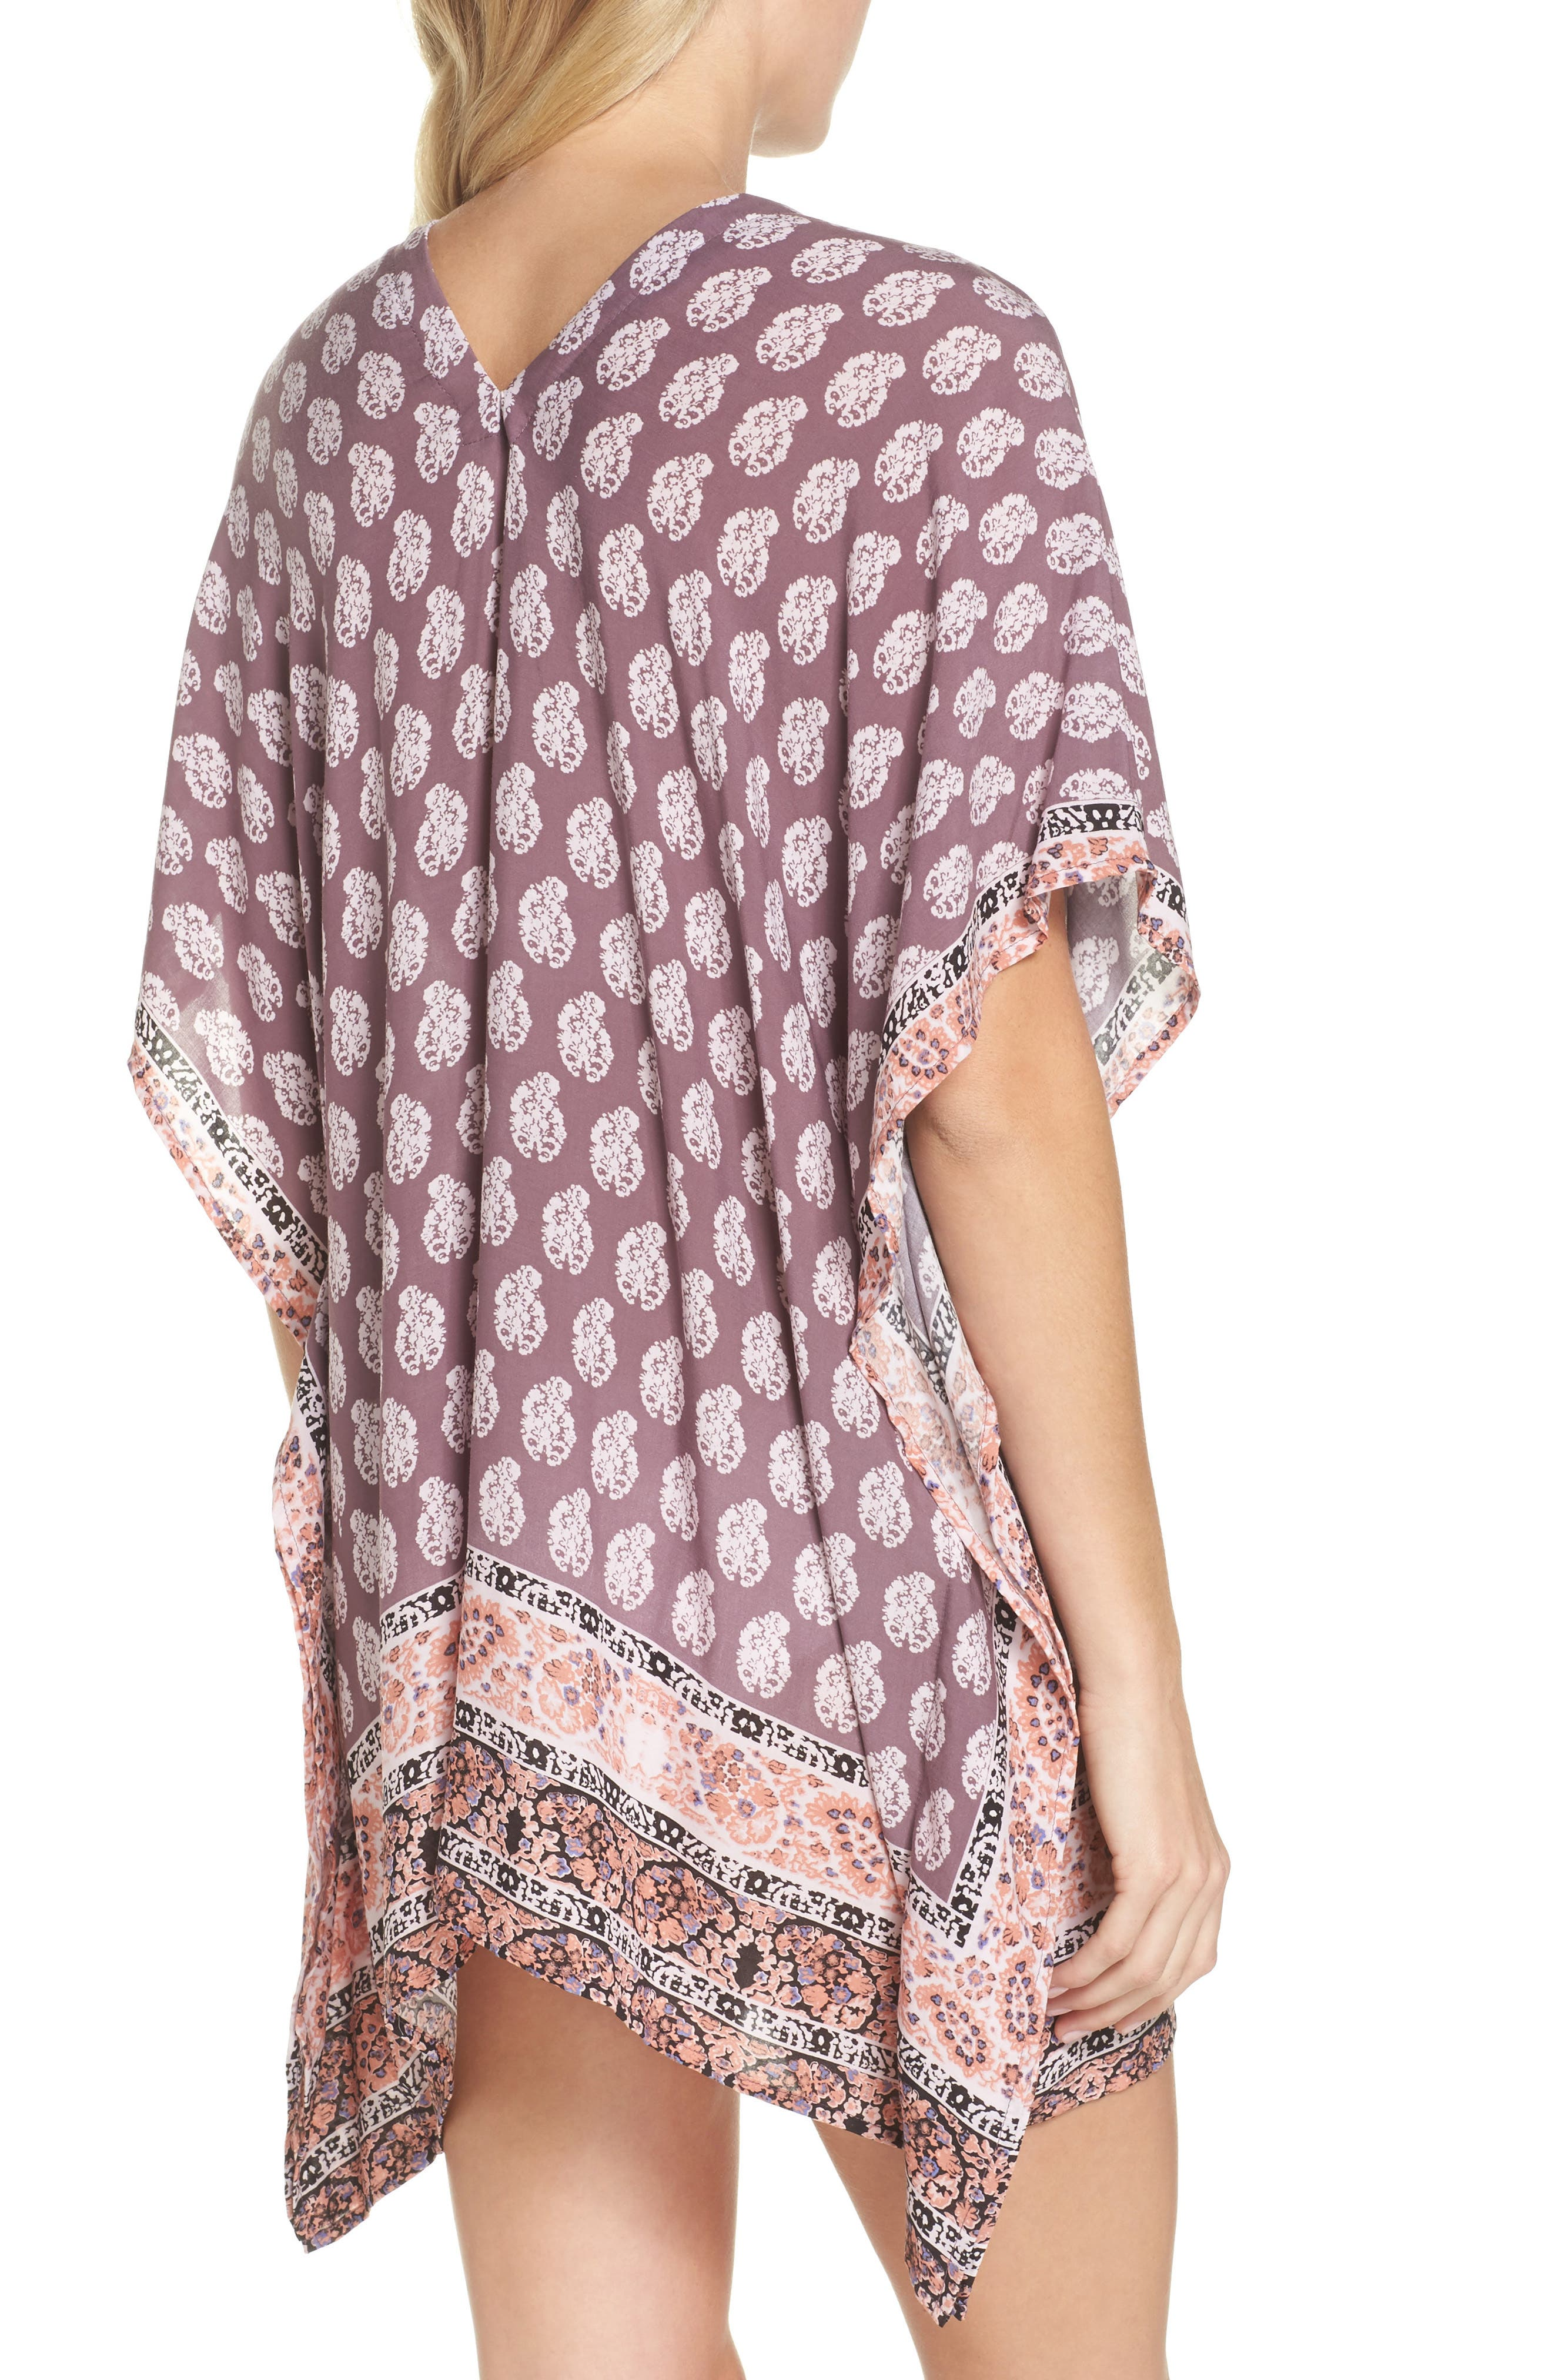 Plum Paradise Cover-Up Tunic,                             Alternate thumbnail 2, color,                             510